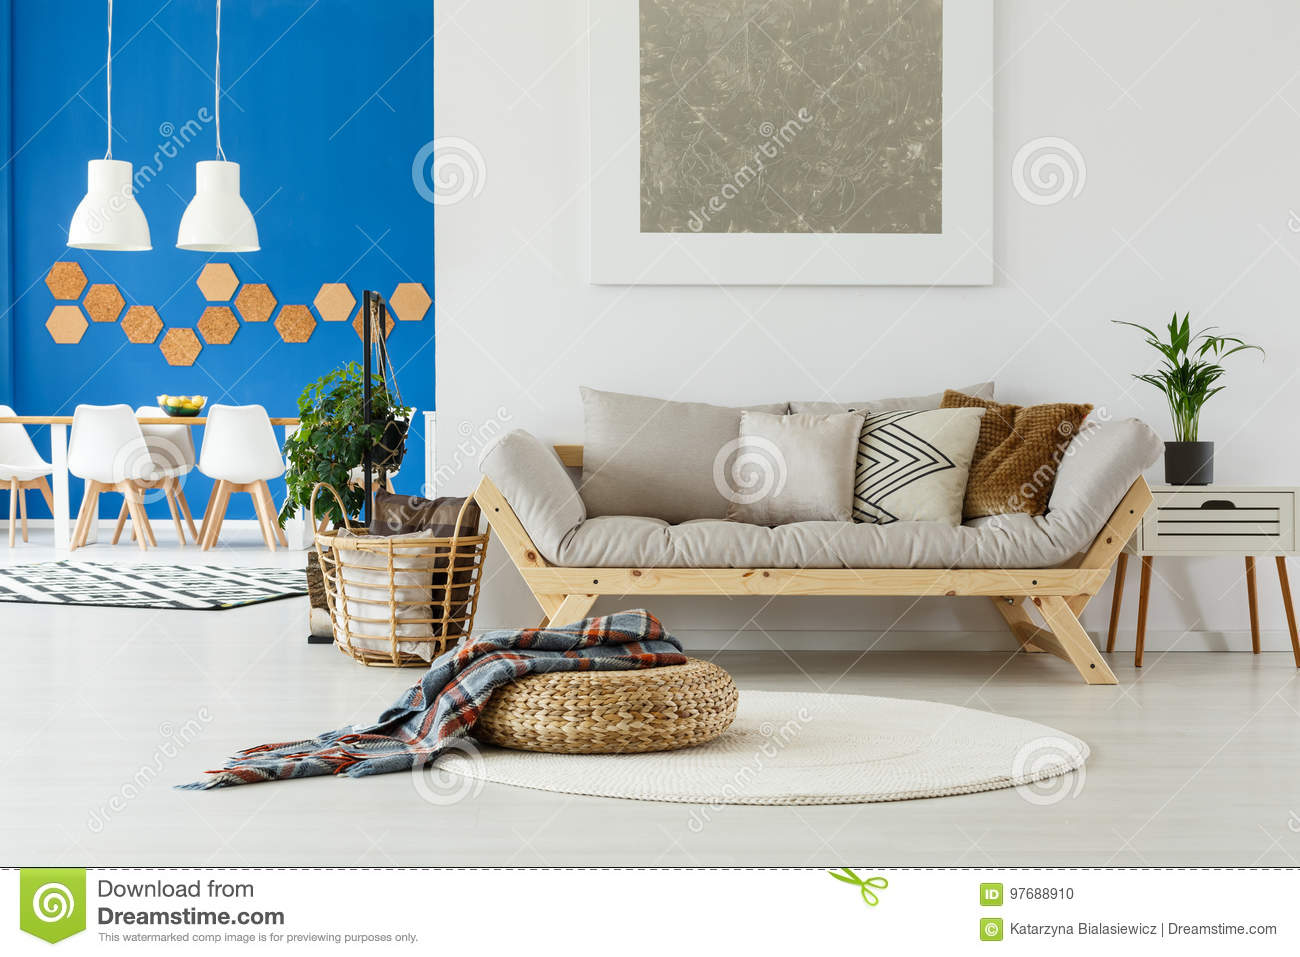 Sofa, plants and blue wall stock photo. Image of dining - 97688910